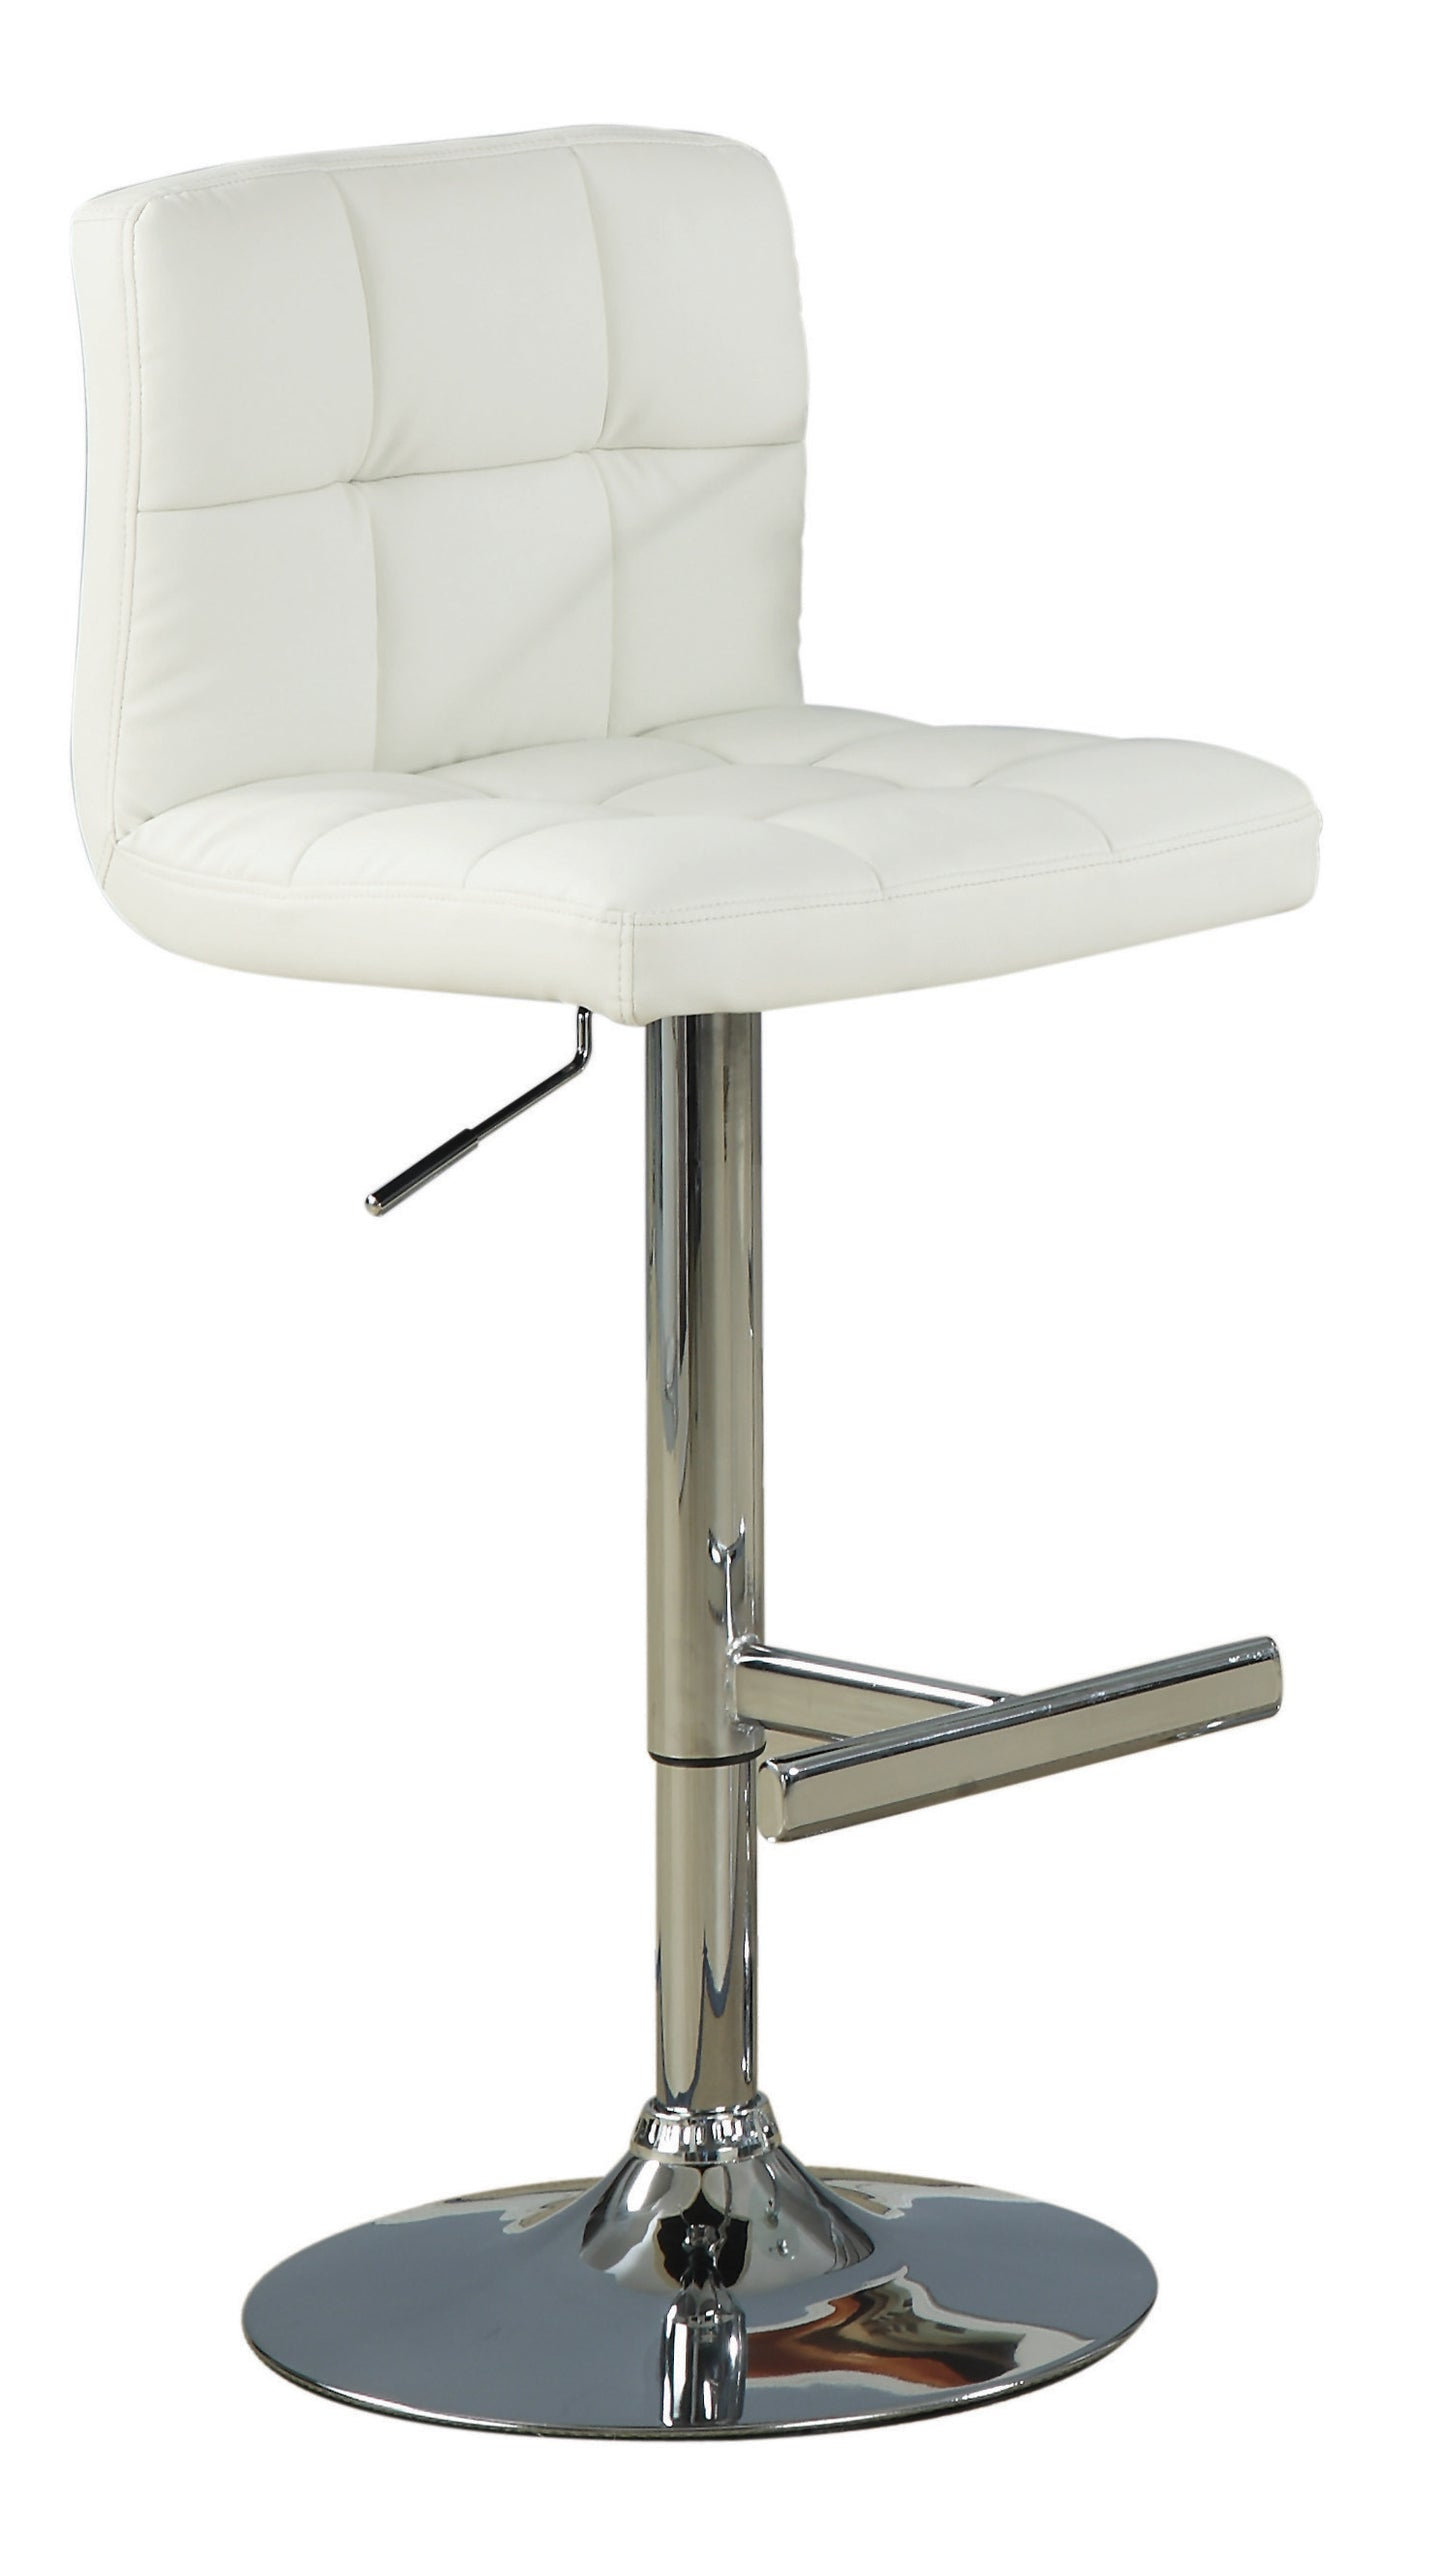 Coaster Cream Leather And Chrome Finish 2 Piece Bar Stool